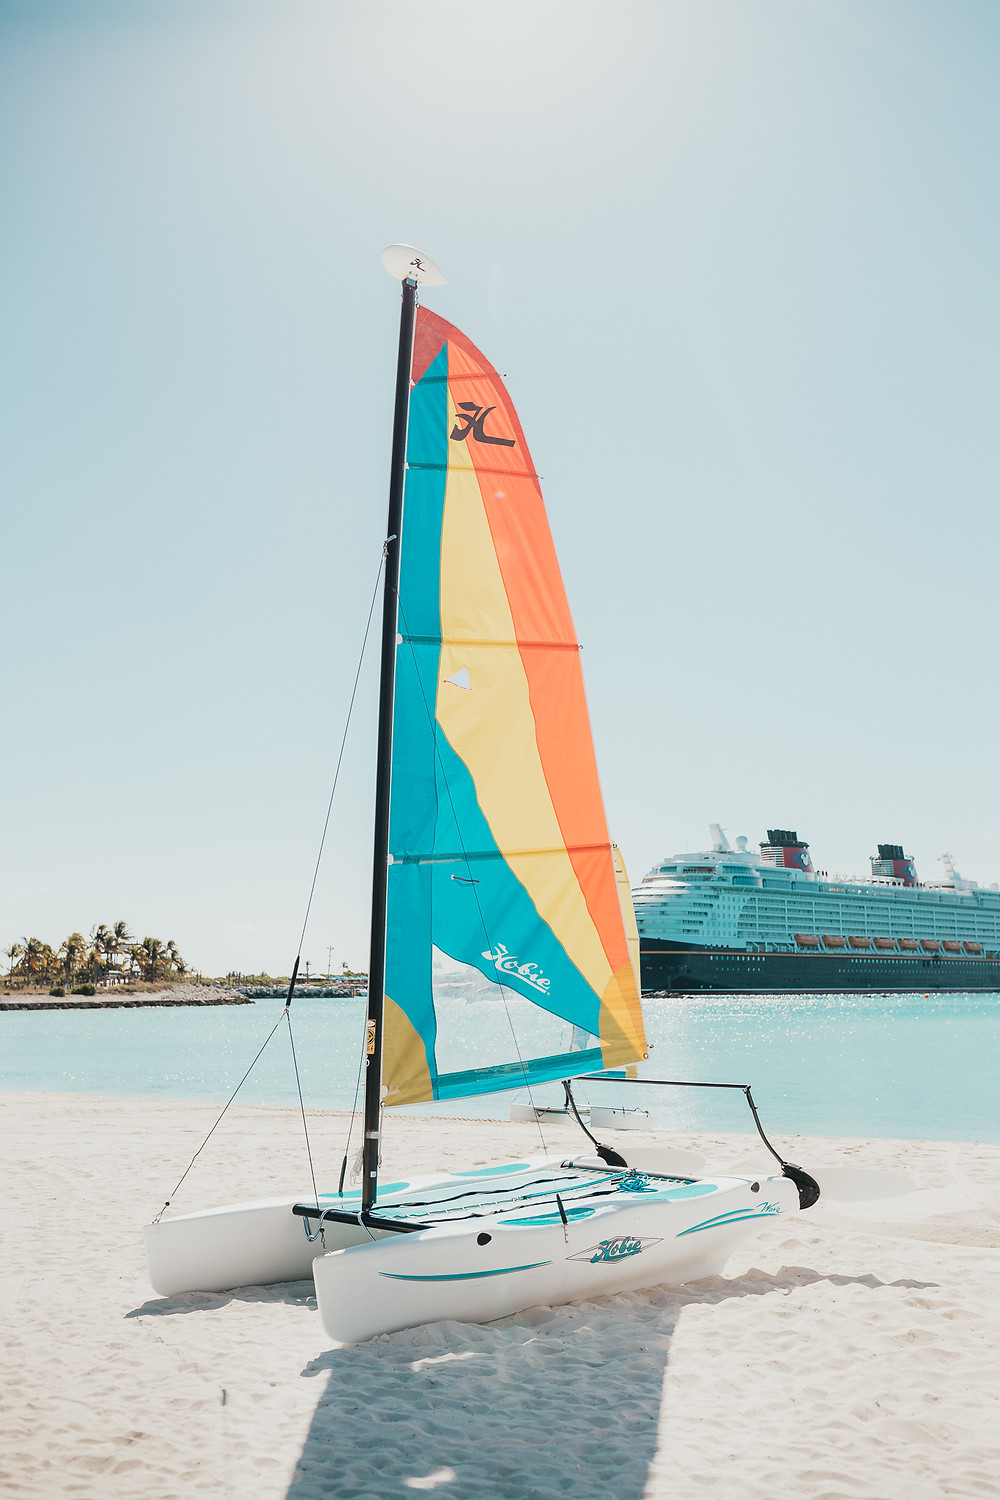 A colourful sail boat in the sand.